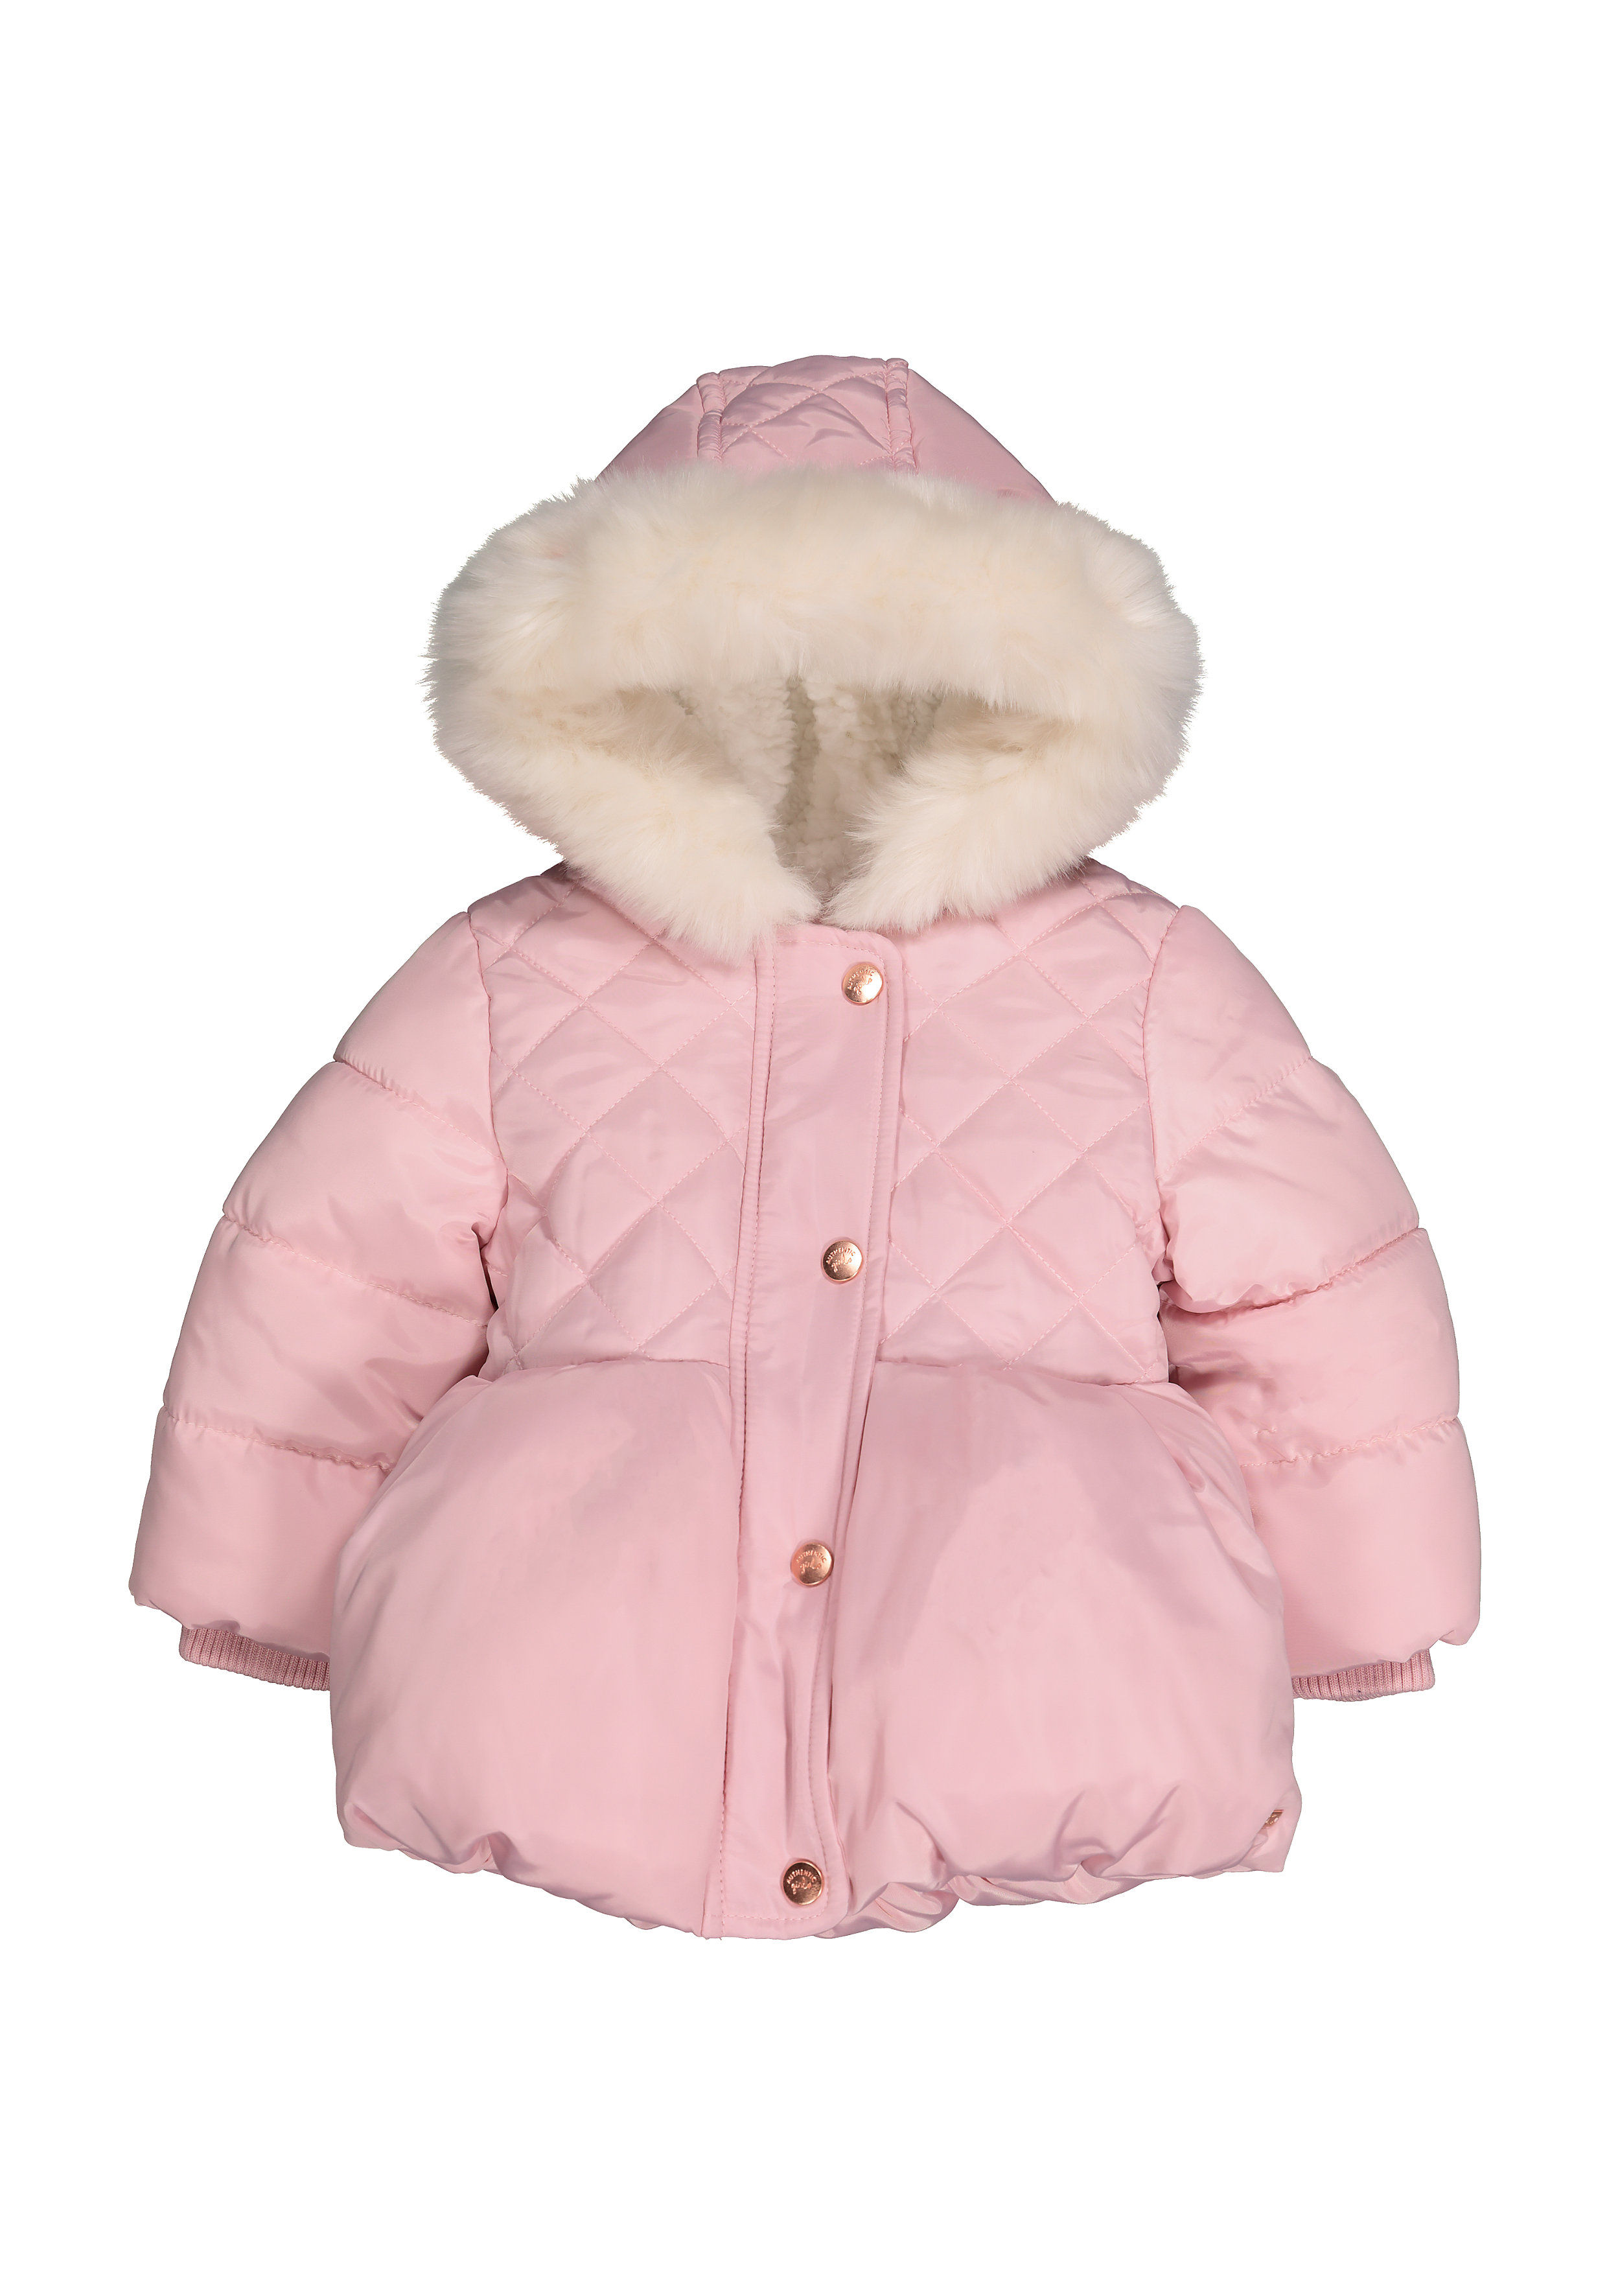 Mothercare | Girls Full Sleeves Jacket With Hood - Pink